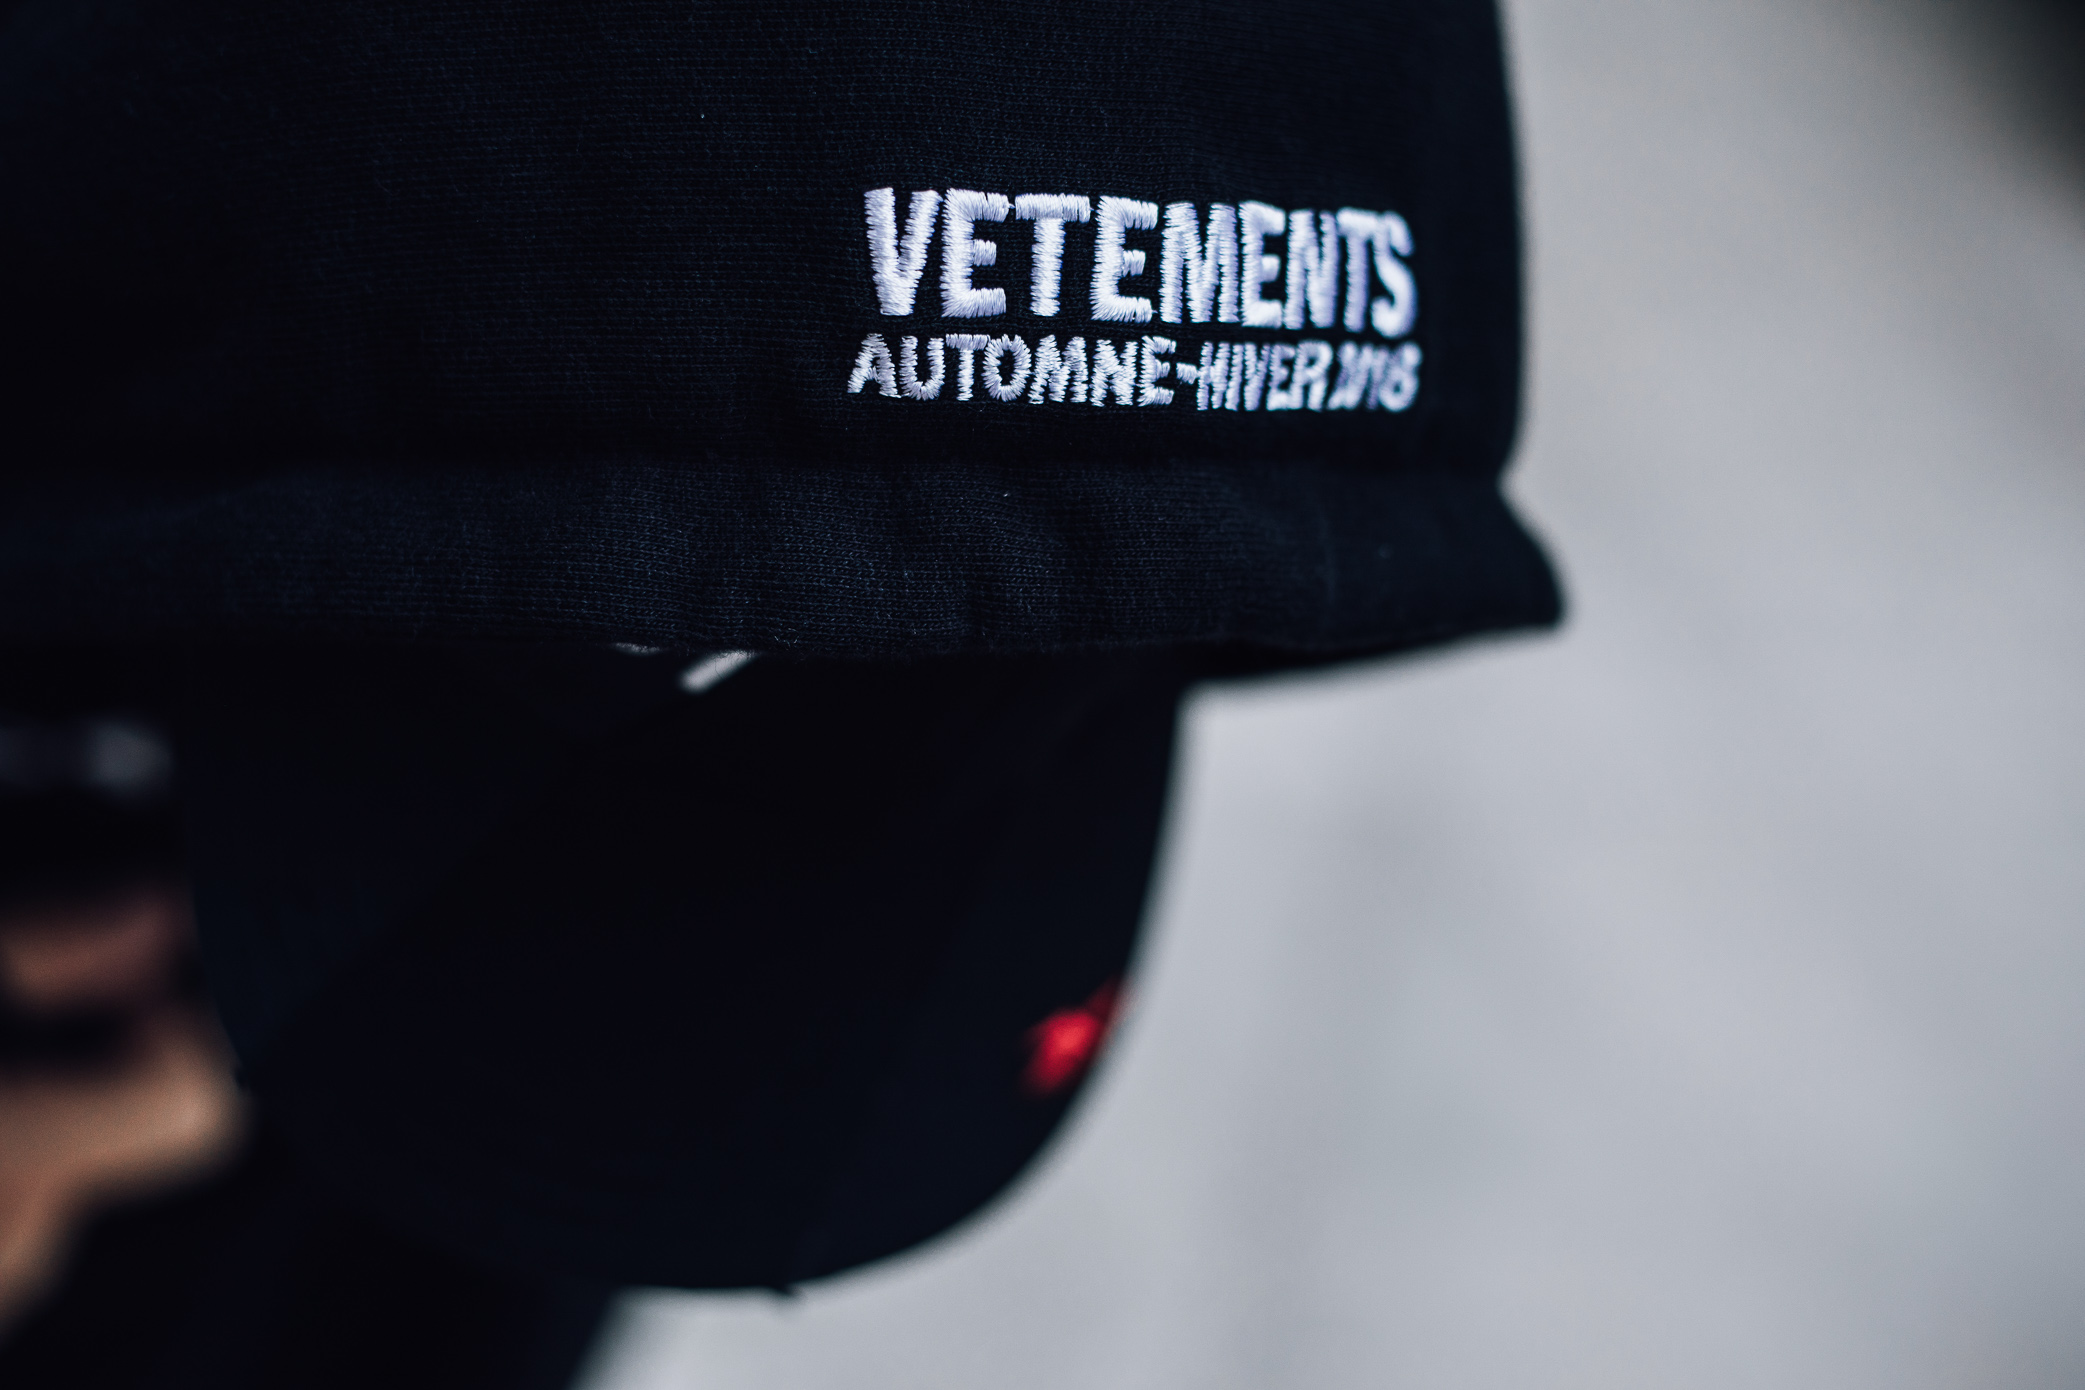 Vetements, Carol Christian Poell